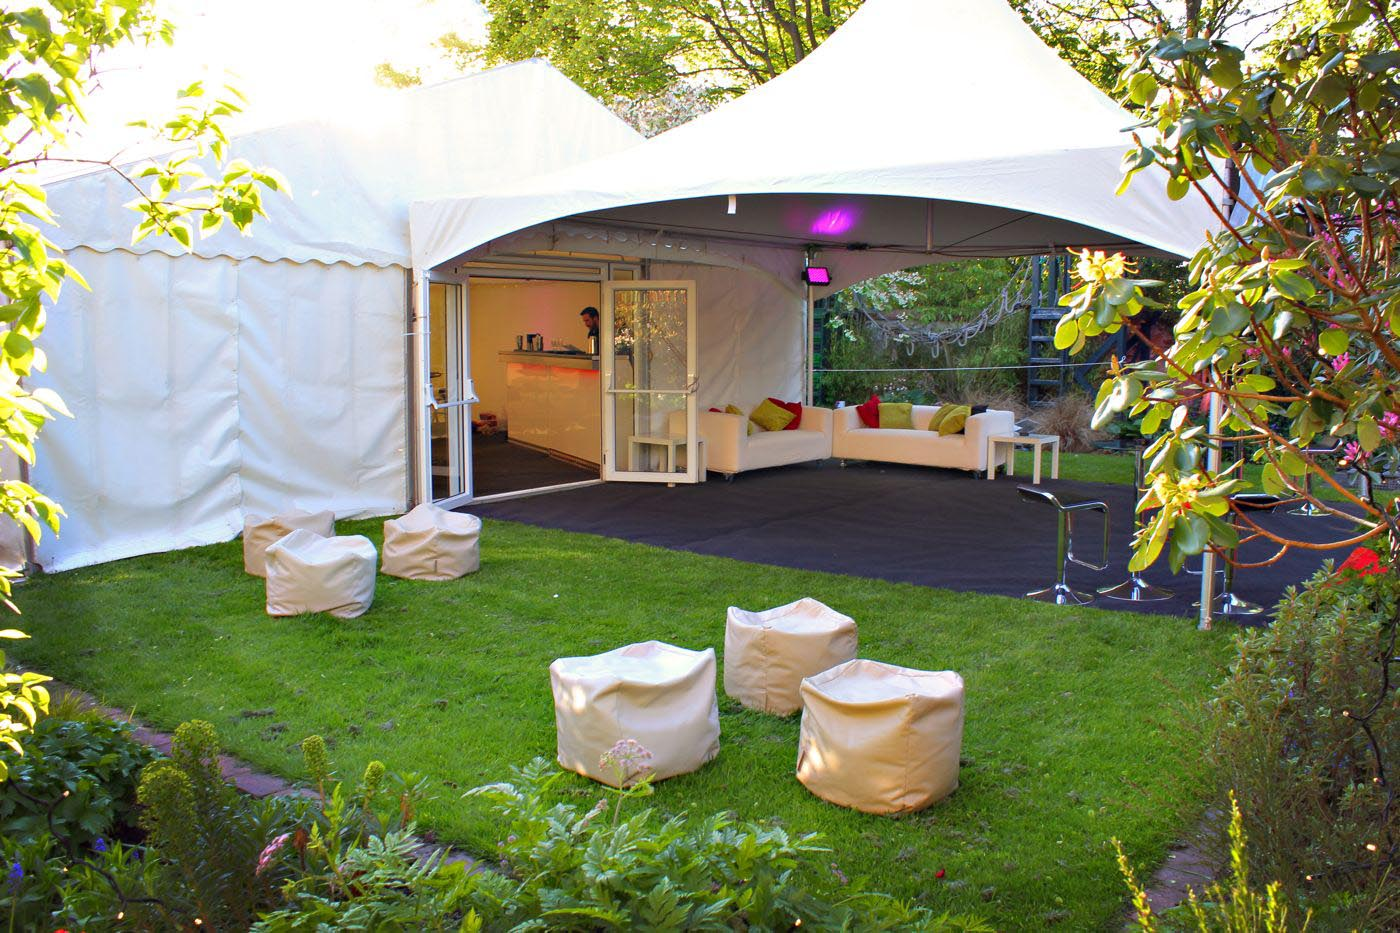 Garden Party Ideas For Adults - A Blog On Garden-5165